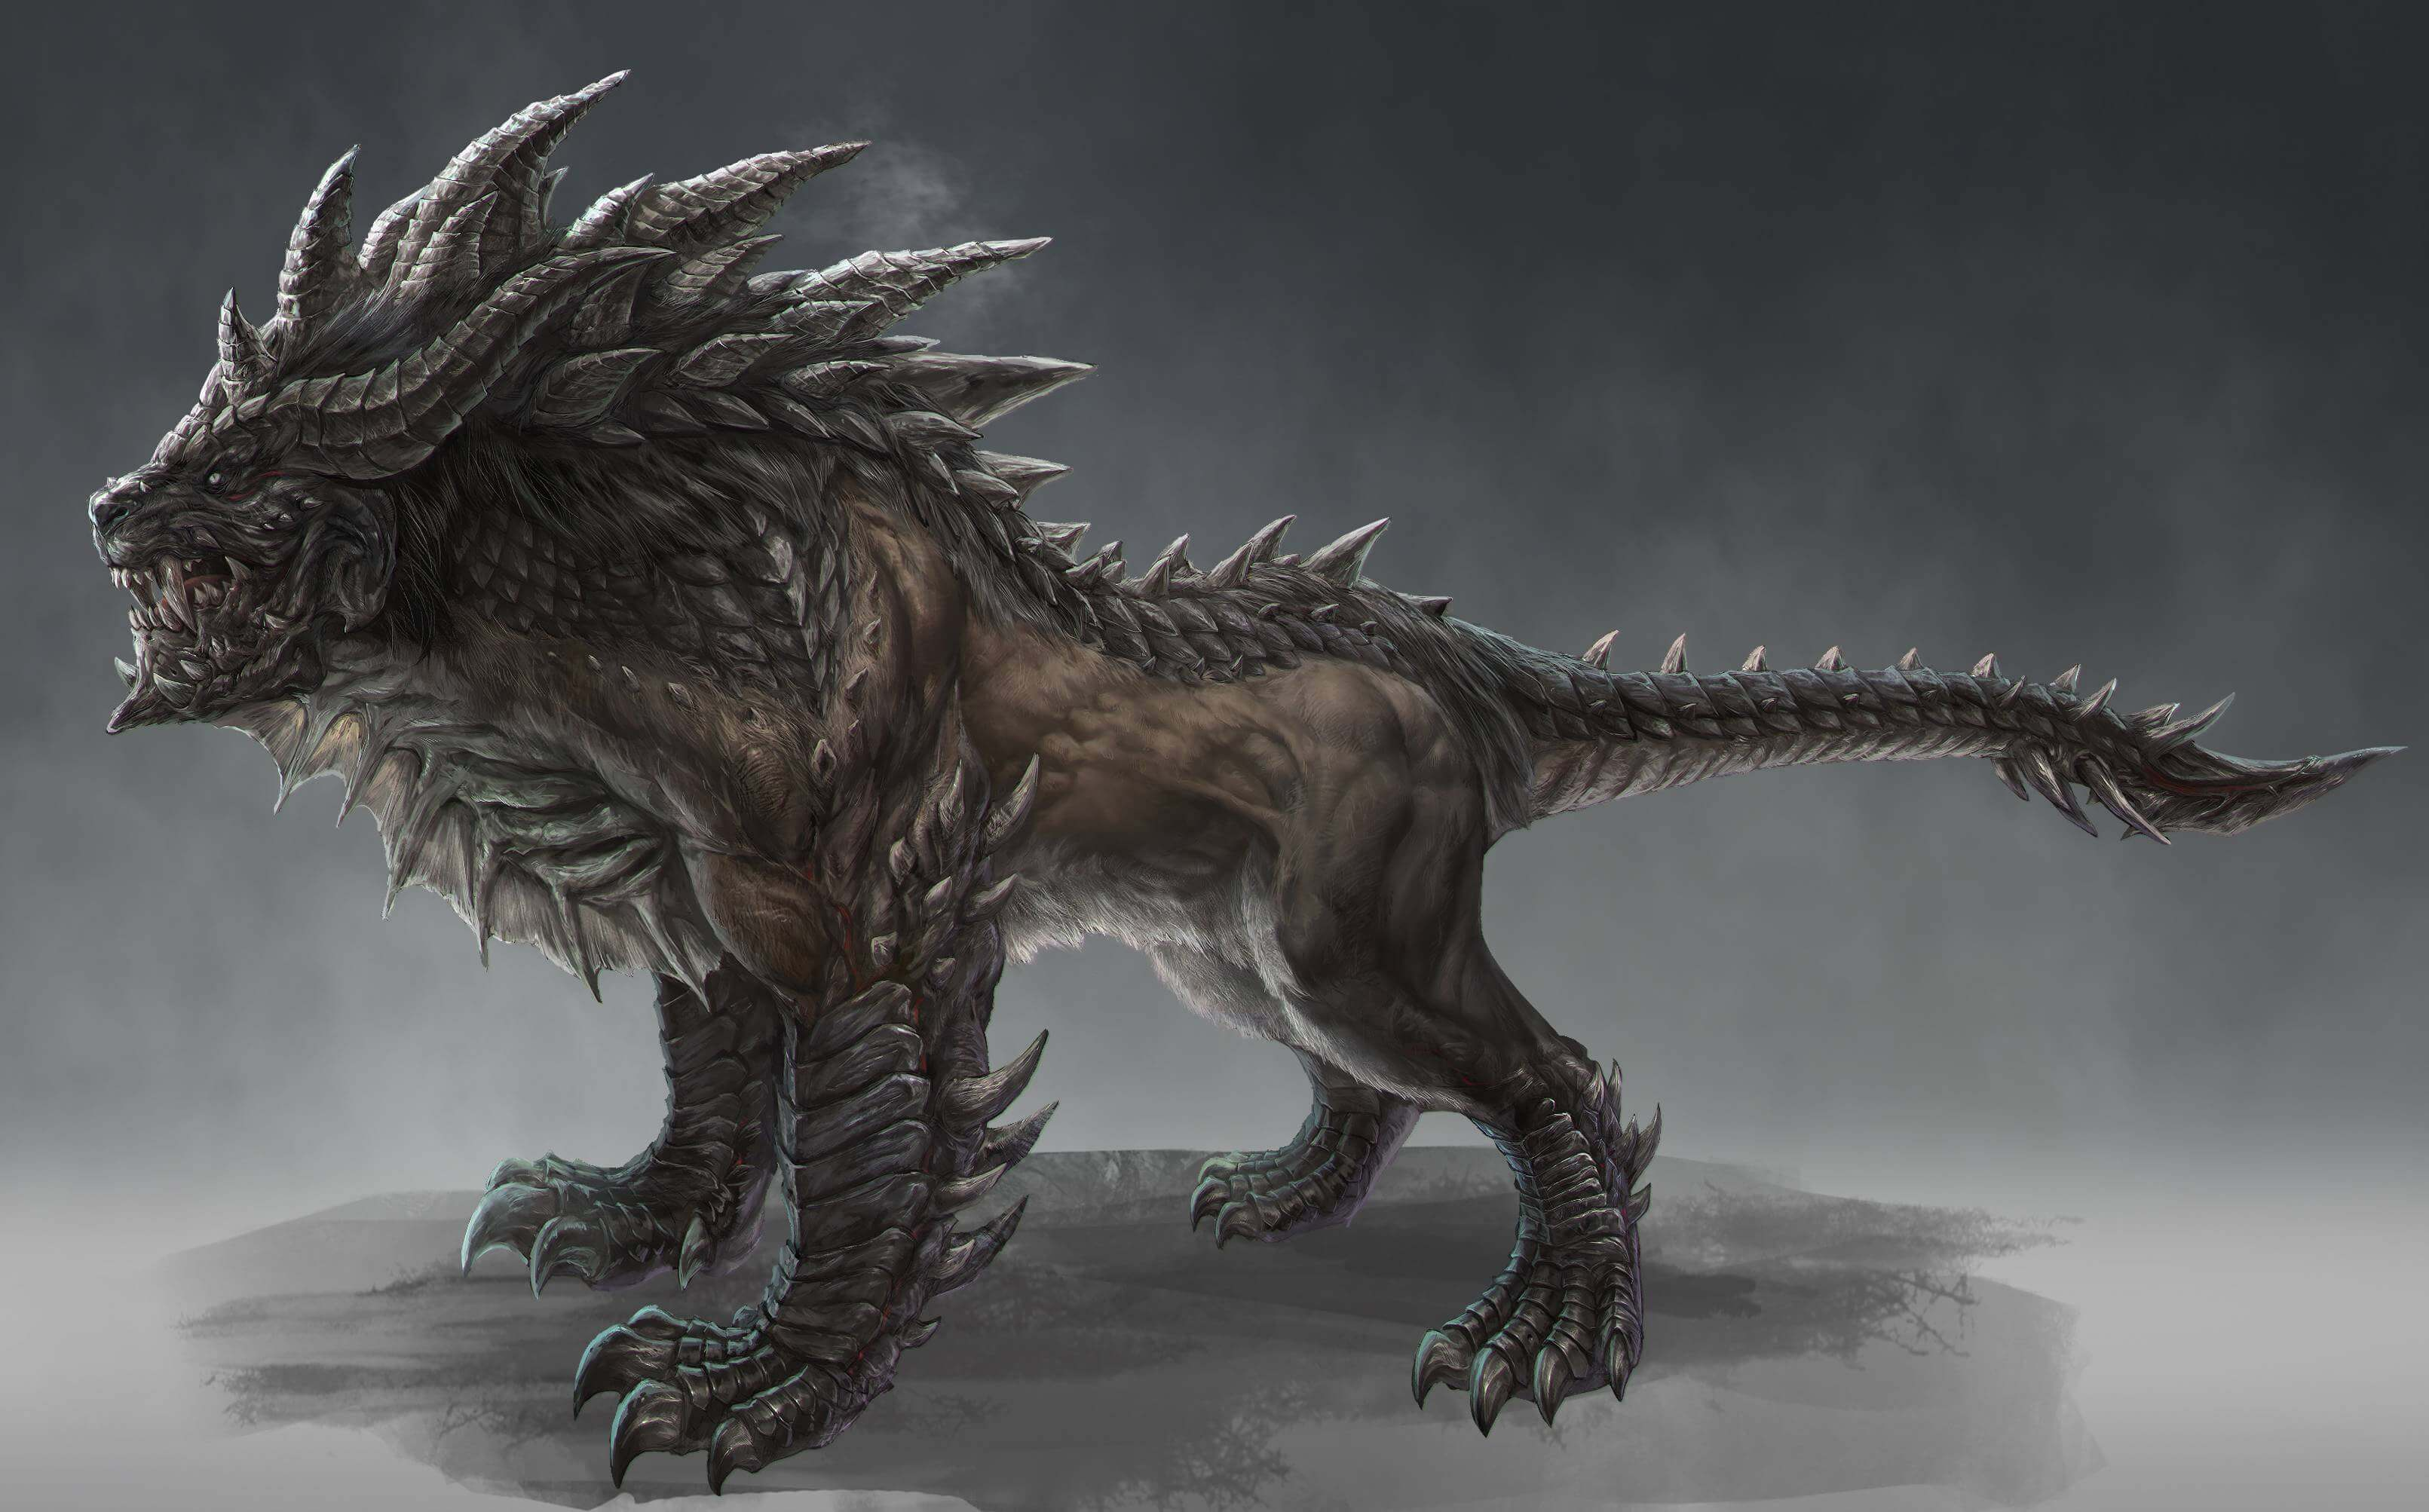 Ascent-Infinite-Realm-Concept-Art-Perueta-Creature